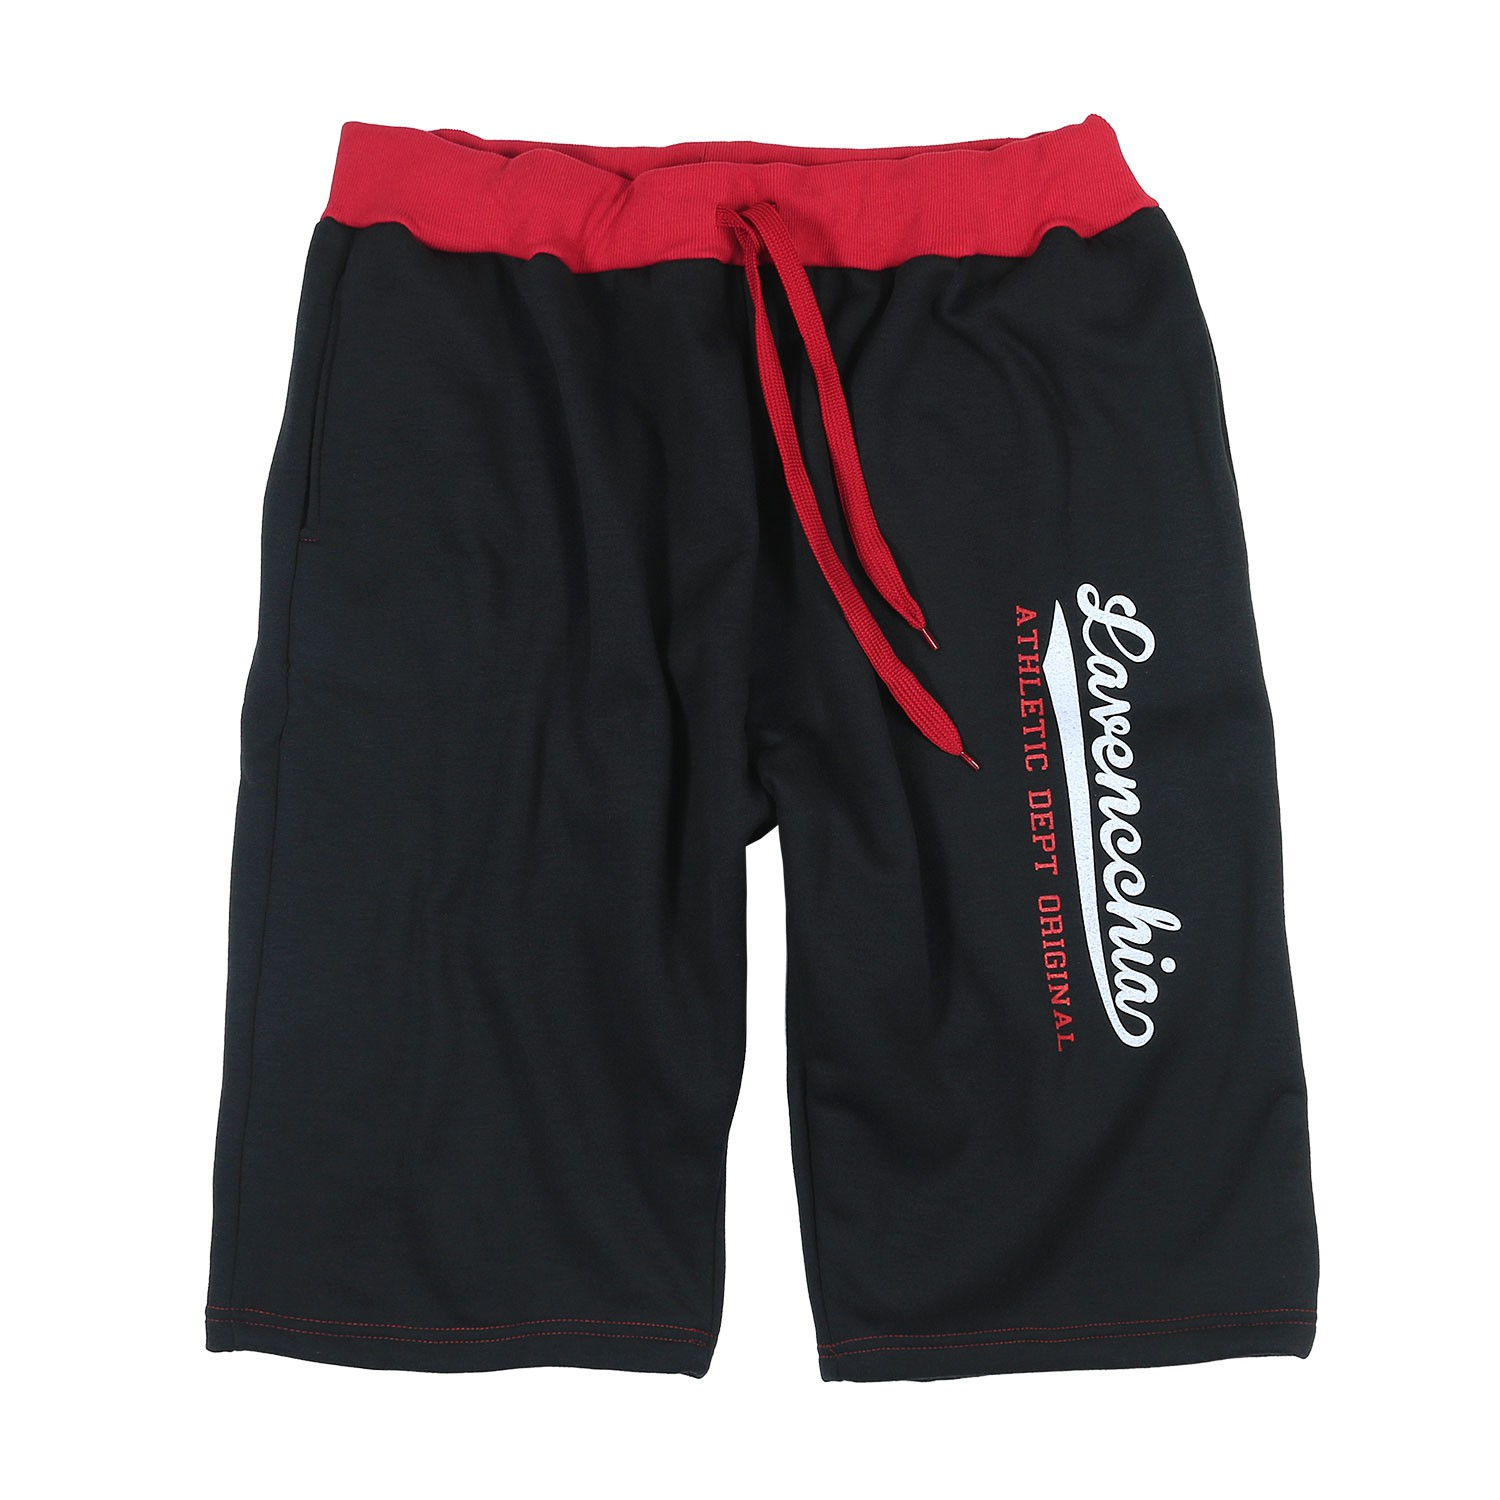 Detail Image to Jogging bermuda in big sizes 3XL - 8XL, red/black